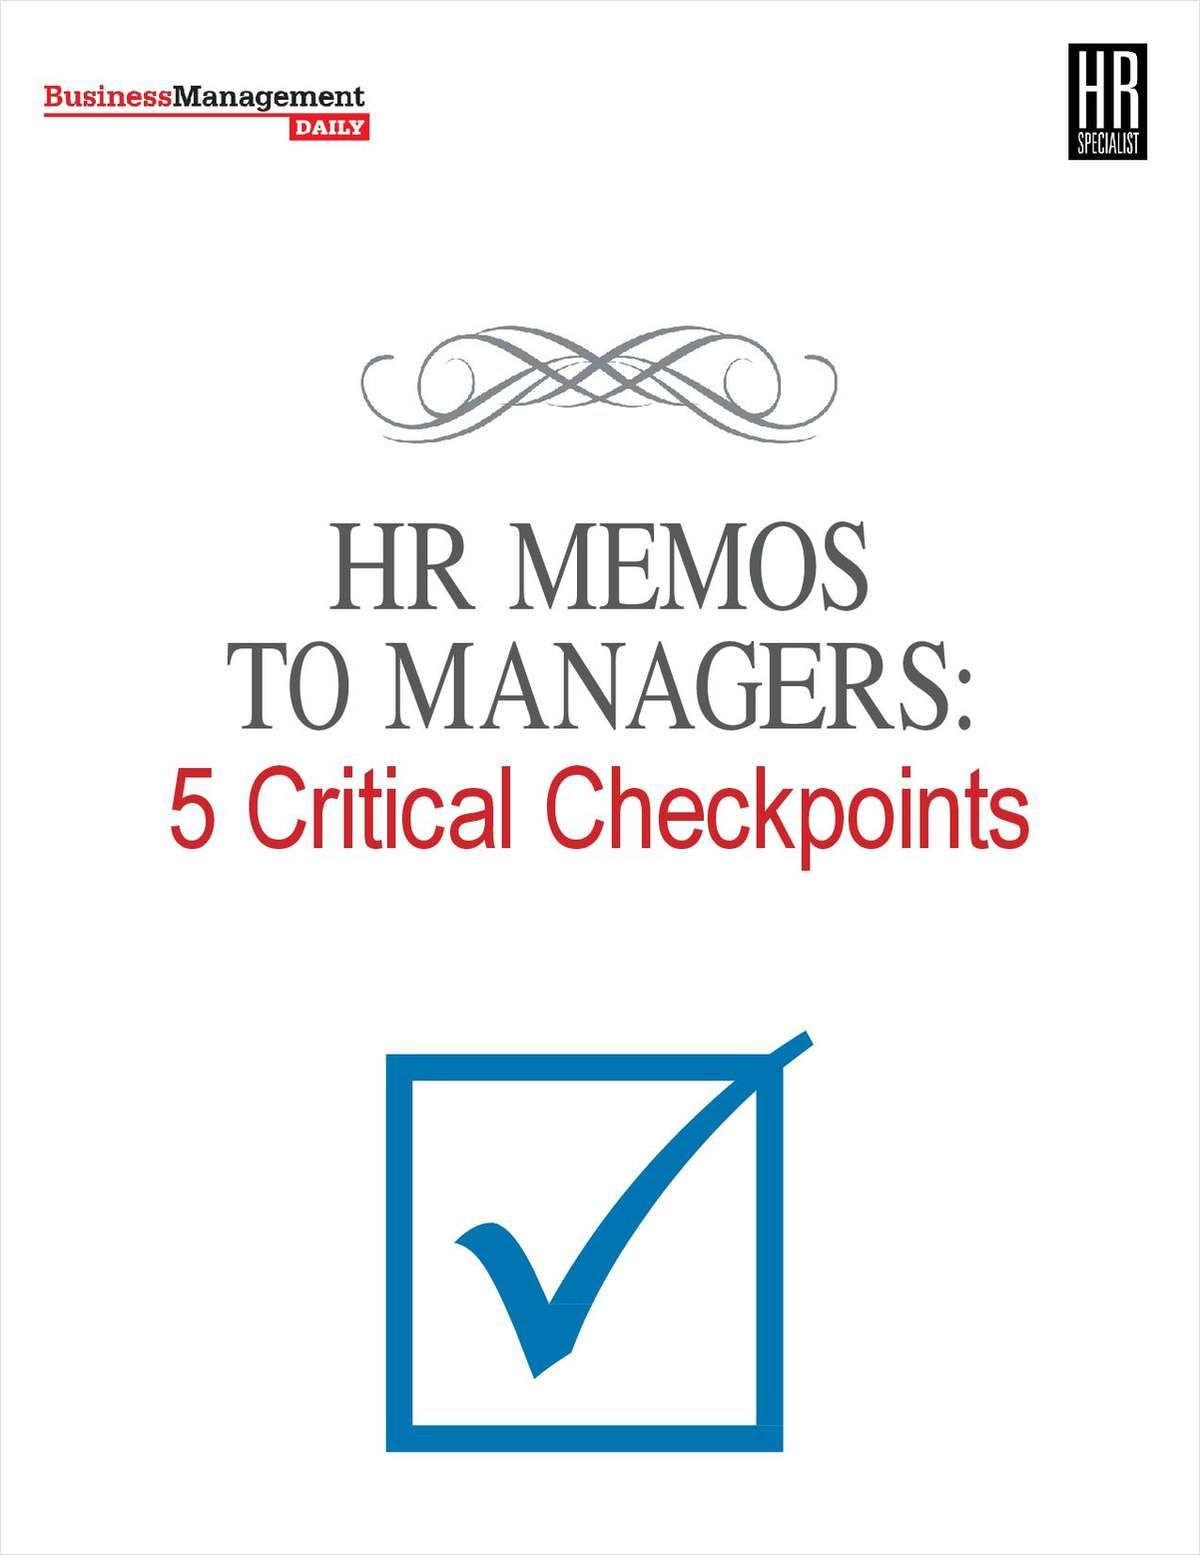 HR Memos to Managers: 5 Critical Checkpoints    Use these 5 critical checkpoints to address human resource concerns. Learn More >